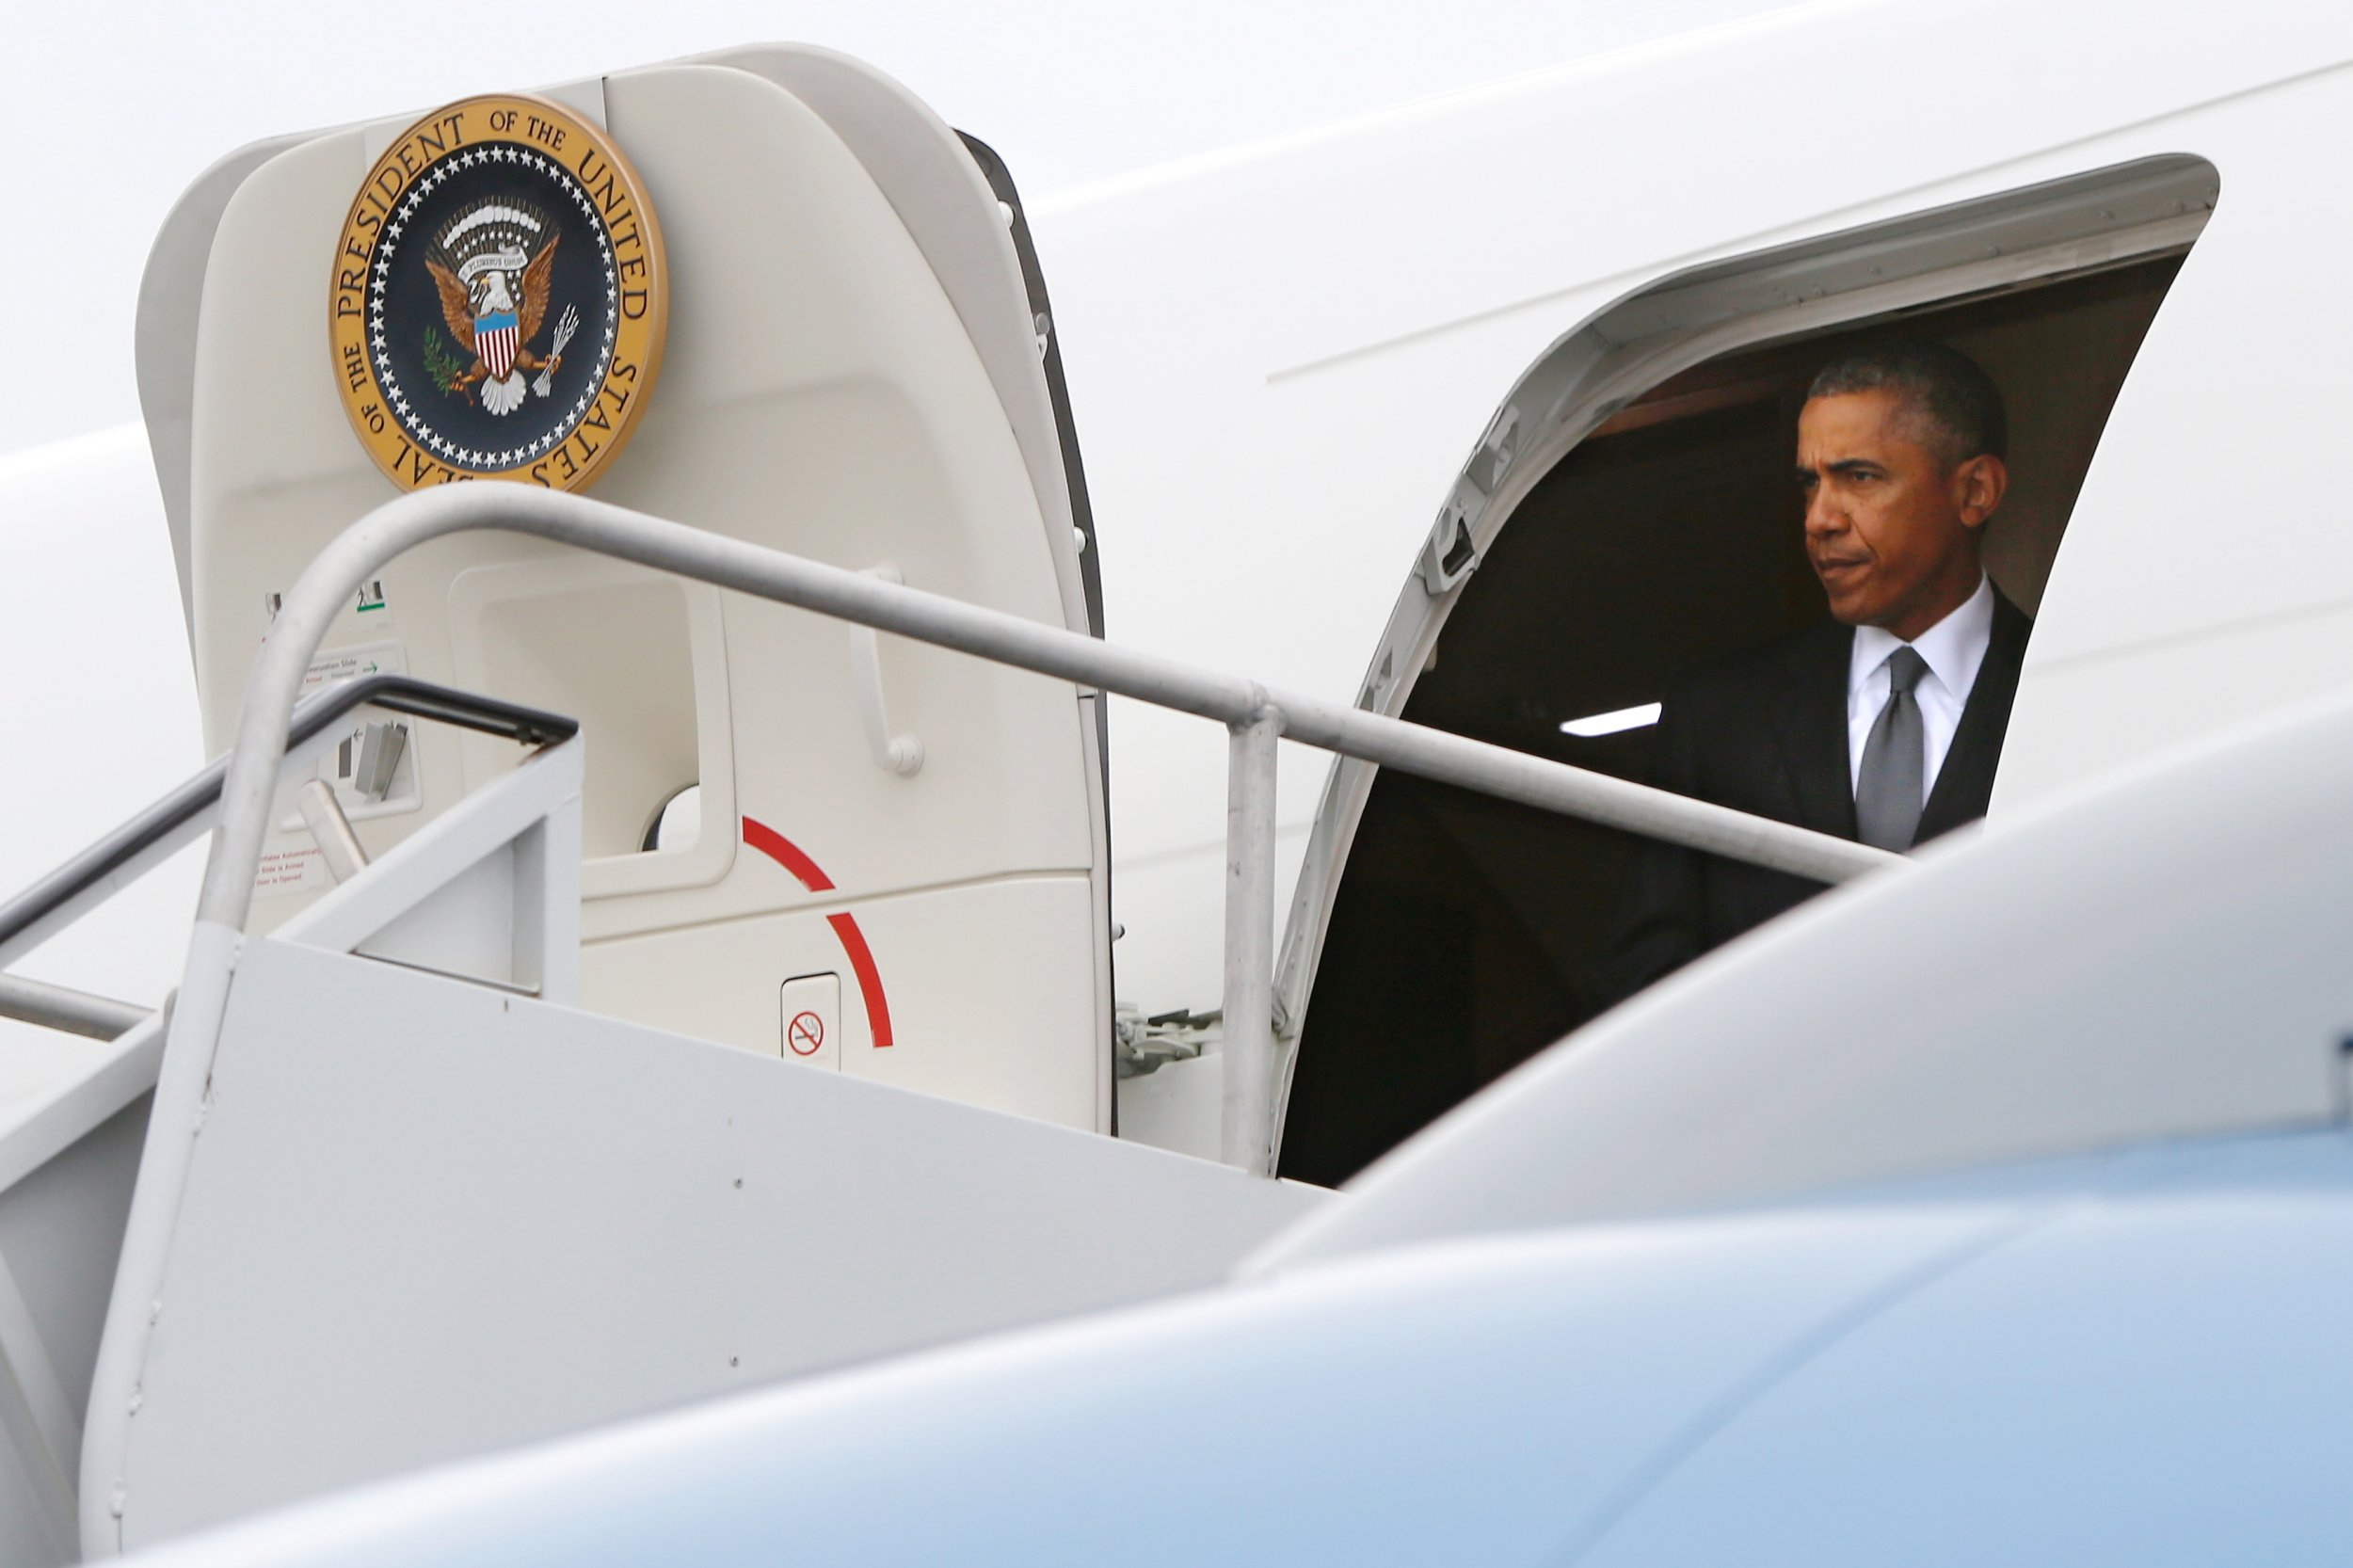 Obama aboard Air Force One